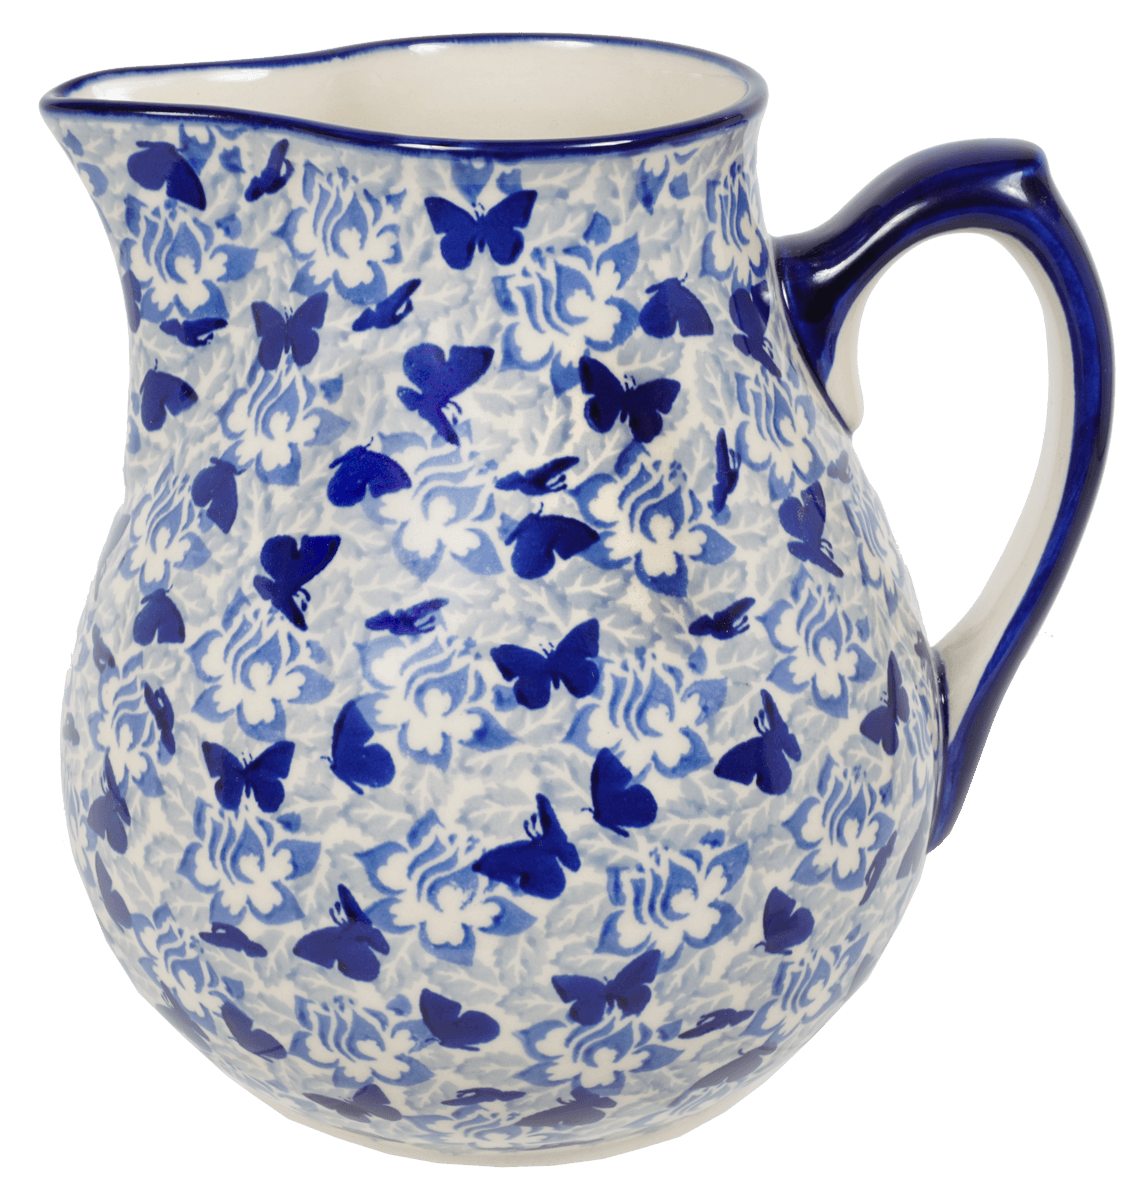 The 3 Liter Pitcher (Dusty Blue Butterflies)